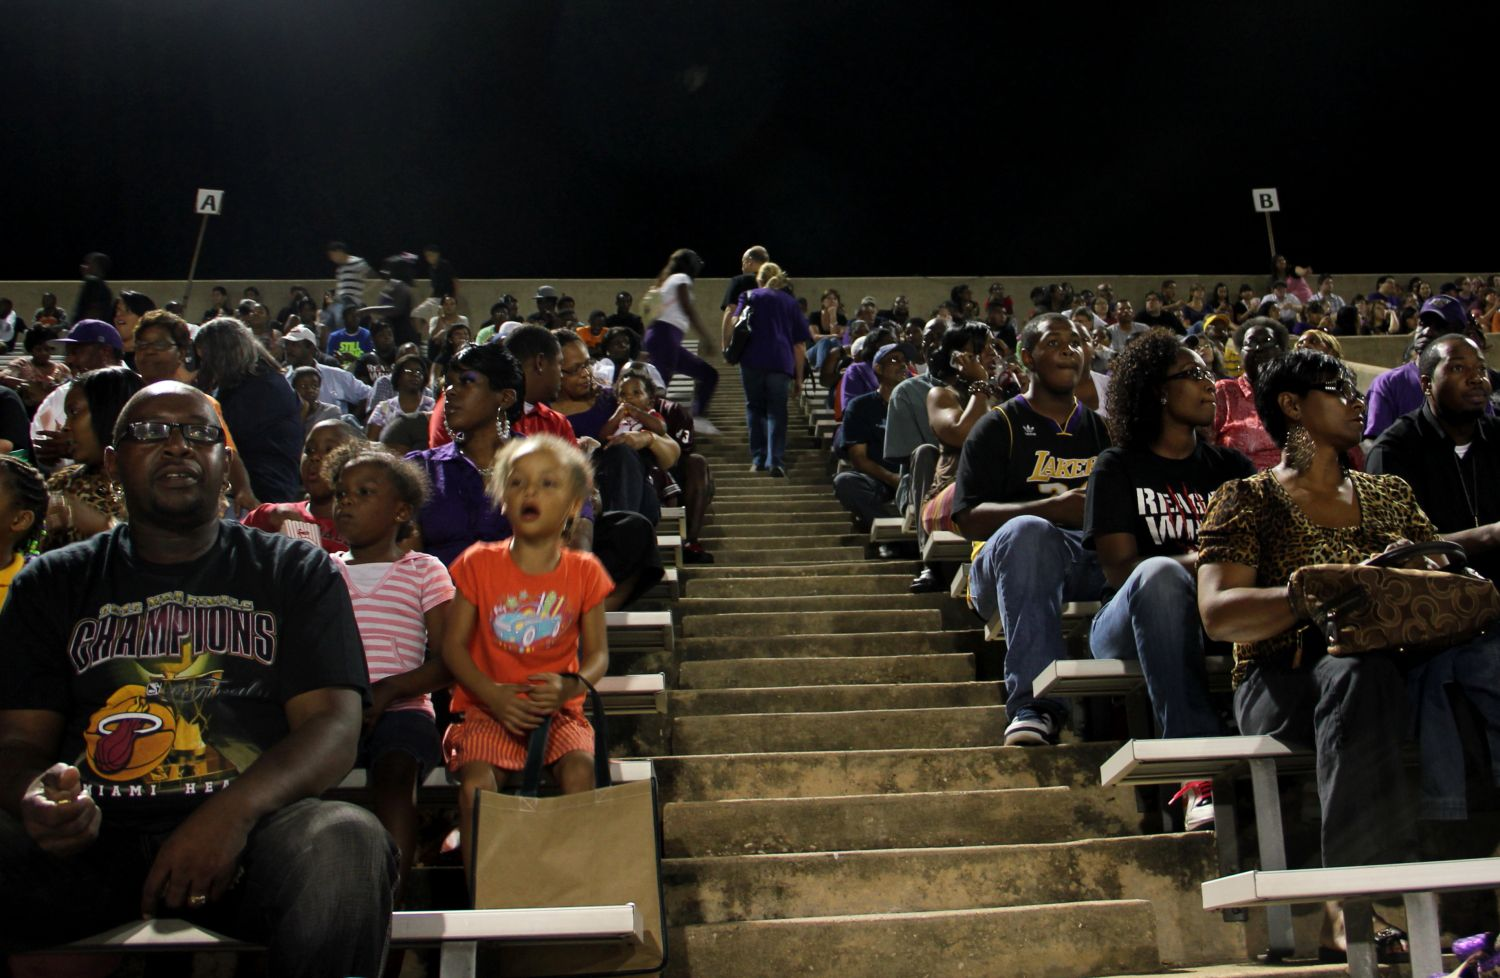 LBJ students and parents watch an LBJ-Reagan football game in Austin, Texas. According to attendees, LBJ and LASA students and parents most often sit in separate sections of the stadium.